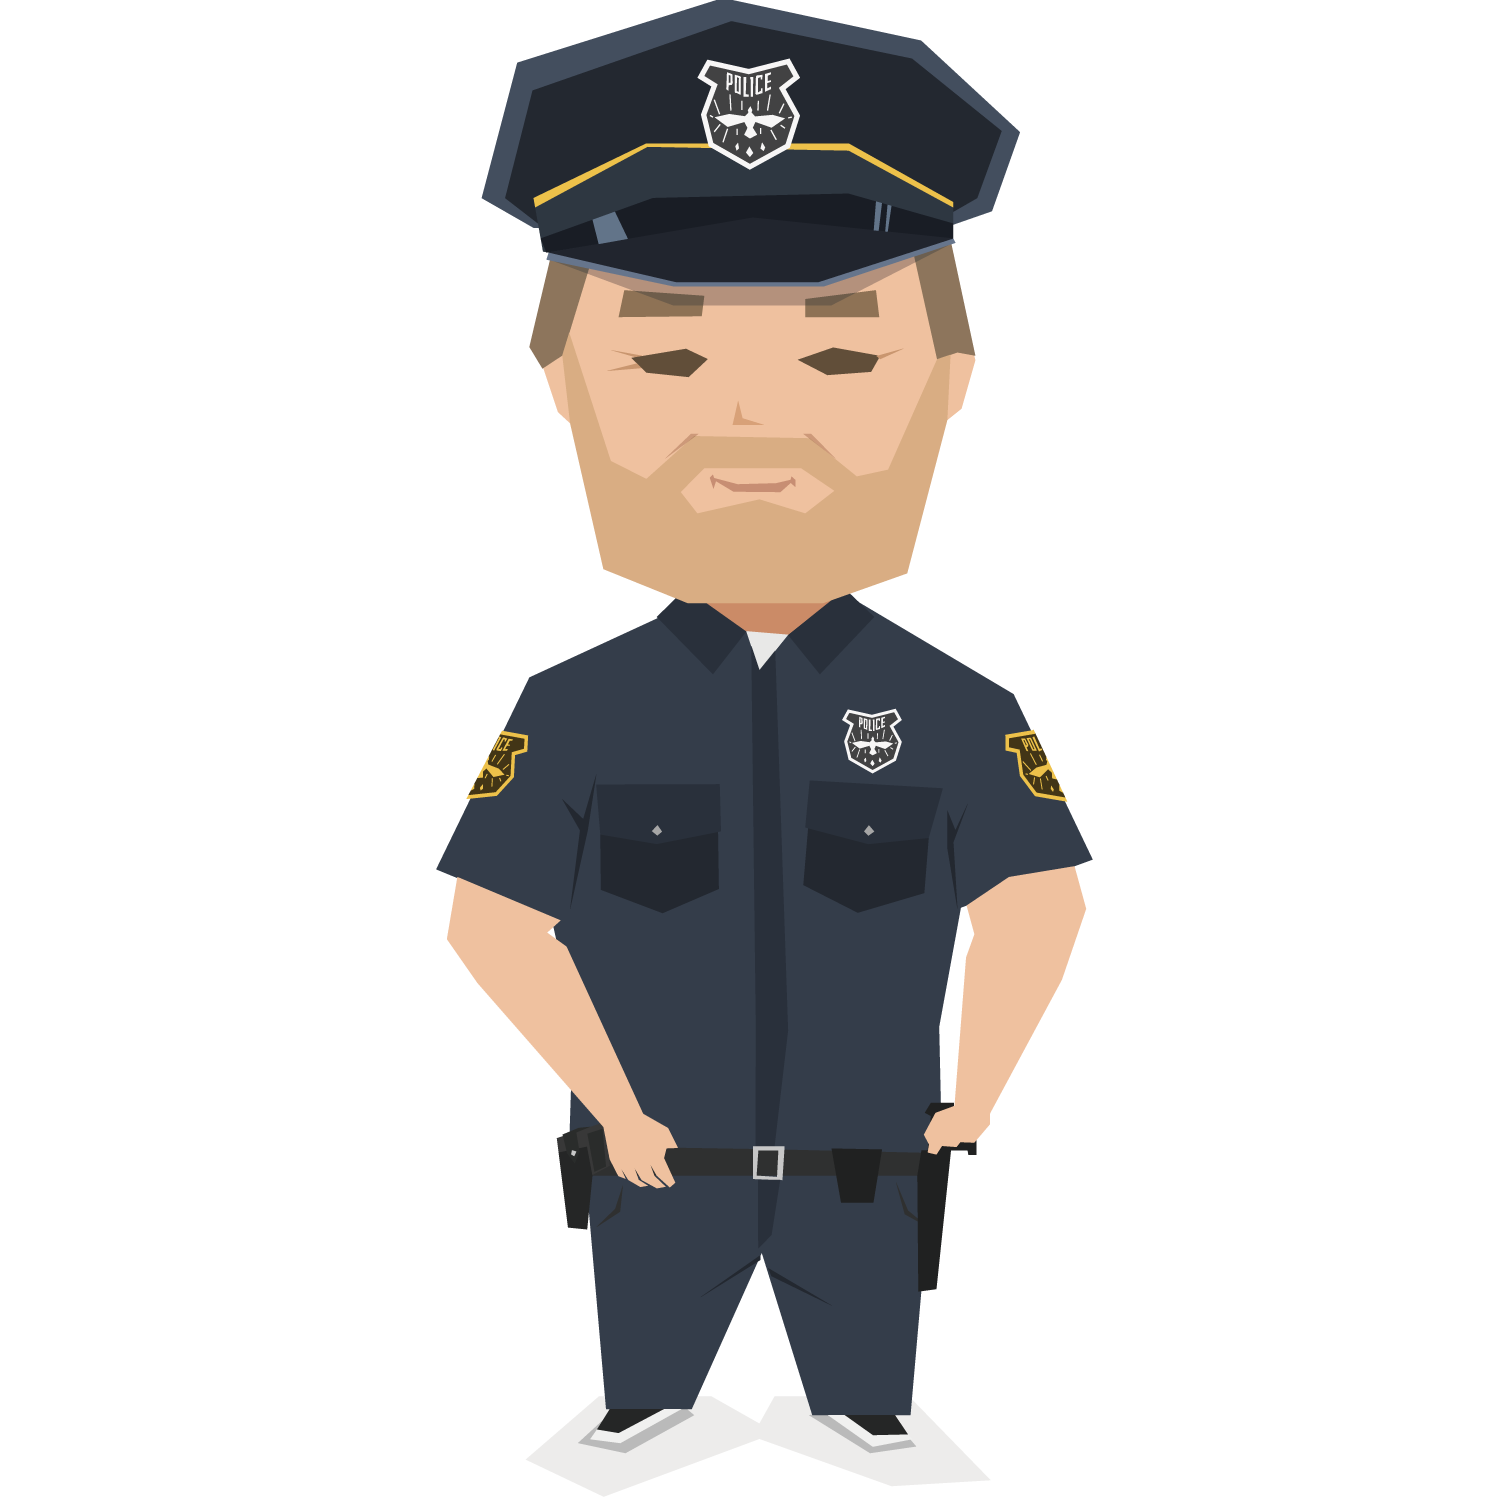 Security police clipart jpg library stock Police officer Uniform Security guard - Uniformed police ... jpg library stock